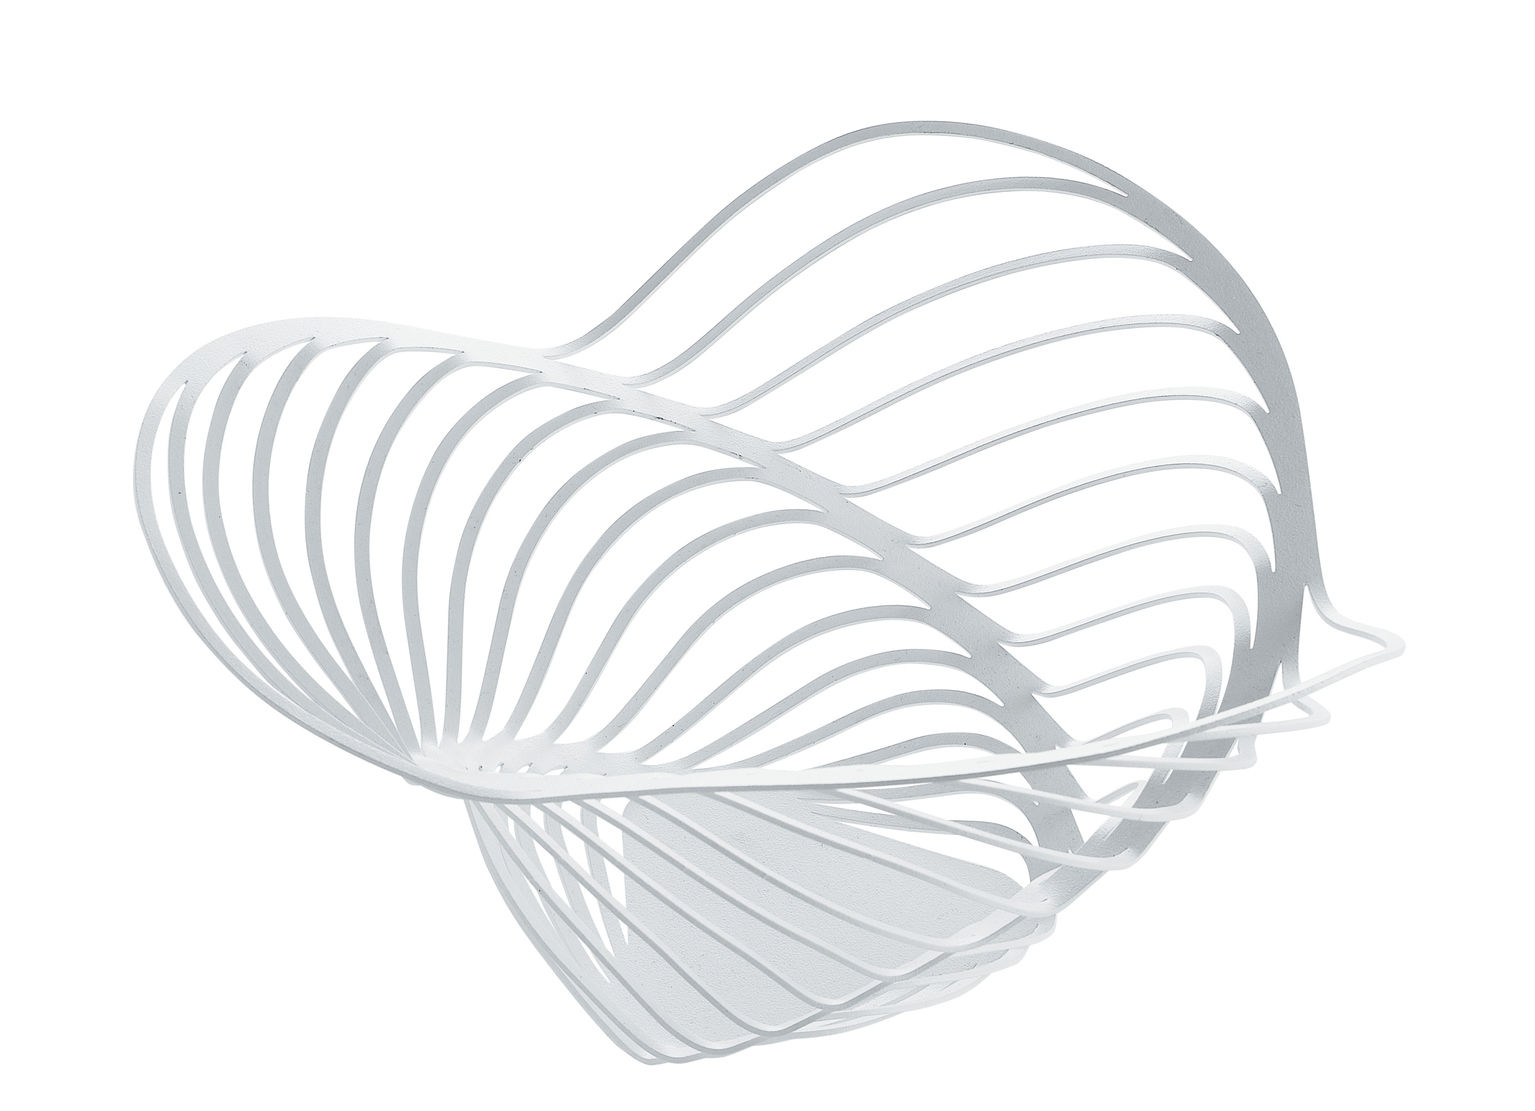 Tableware - Fruit Bowls & Centrepieces - Trinity Basket - Ø 26 x H 12 cm by Alessi - White - Painted steel